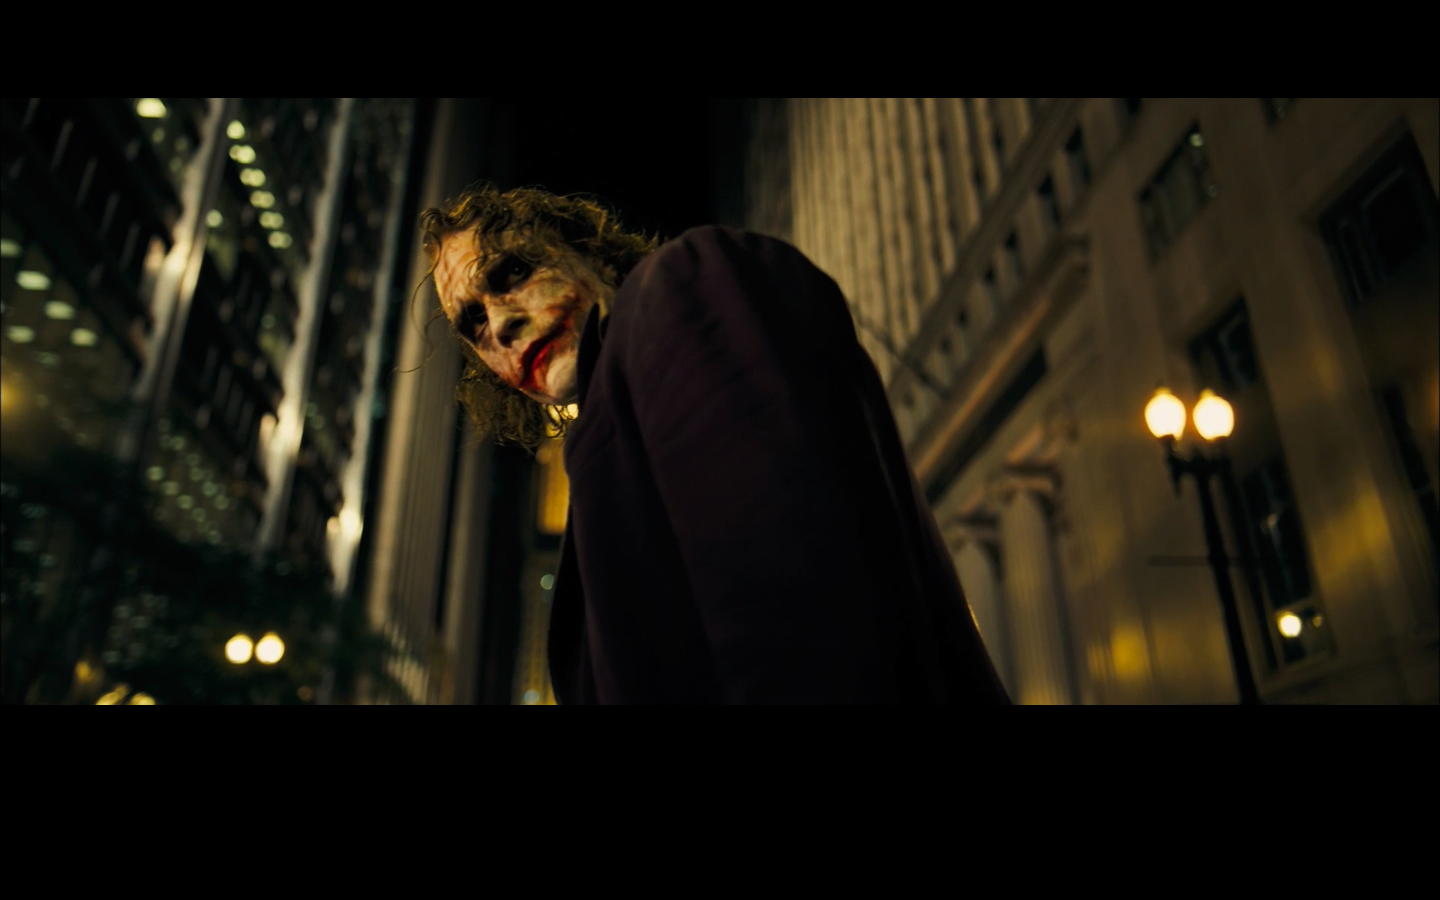 The Joker Wallpaper 1440x900 The Joker Heath Ledger Batman The 1440x900